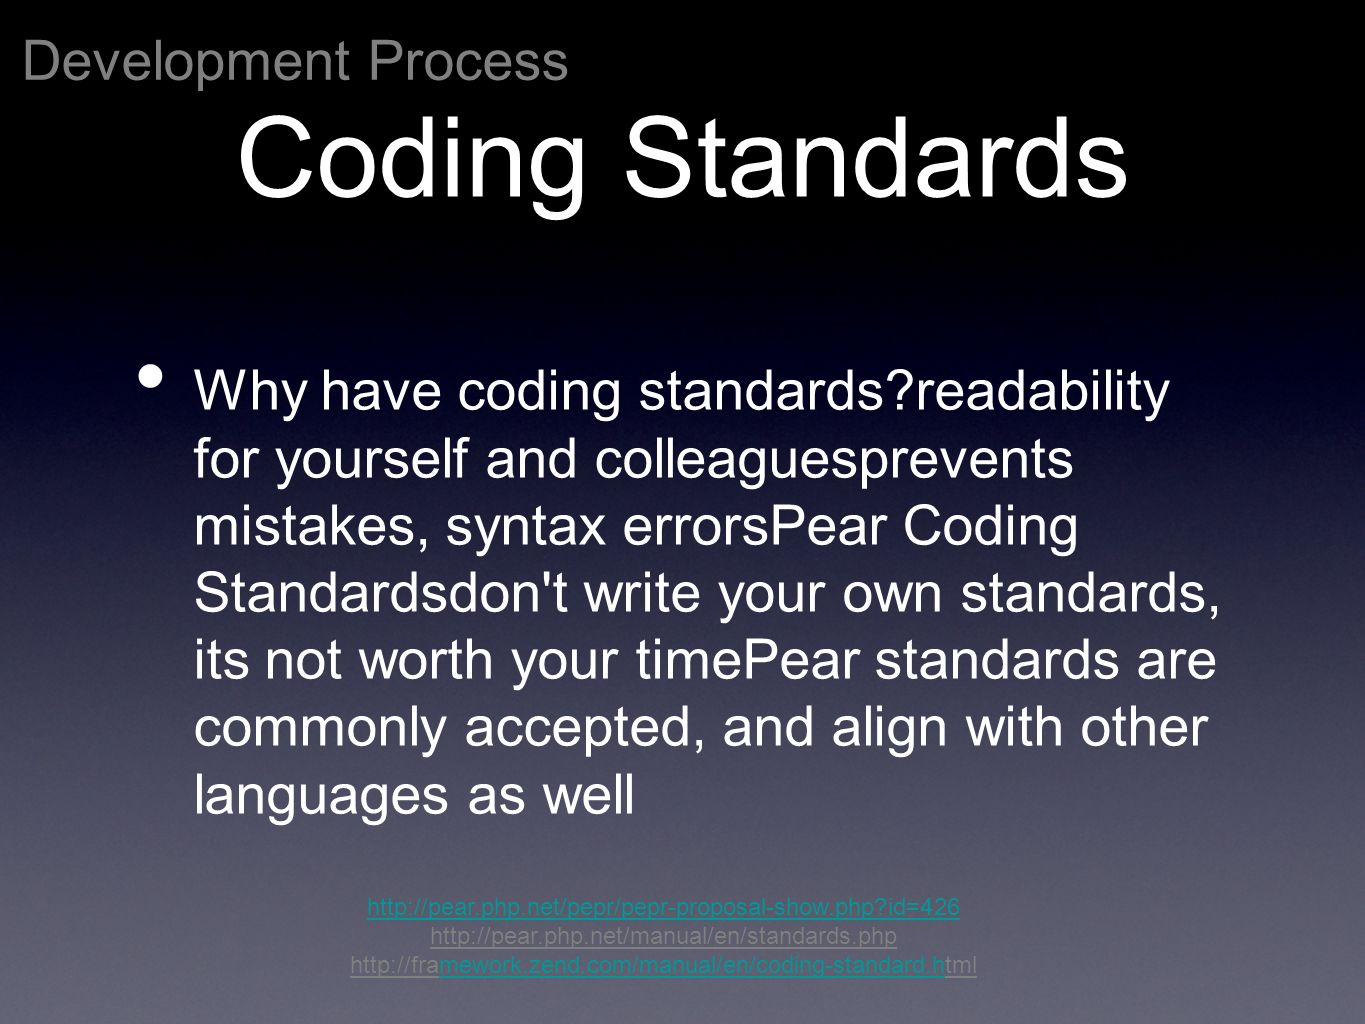 Development Process http://pear.php.net/pepr/pepr-proposal-show.php id=426 http://pear.php.net/manual/en/standards.php http://framework.zend.com/manual/en/coding-standard.htmlmework.zend.com/manual/en/coding-standard.h Coding Standards Why have coding standards readability for yourself and colleaguesprevents mistakes, syntax errorsPear Coding Standardsdon t write your own standards, its not worth your timePear standards are commonly accepted, and align with other languages as well